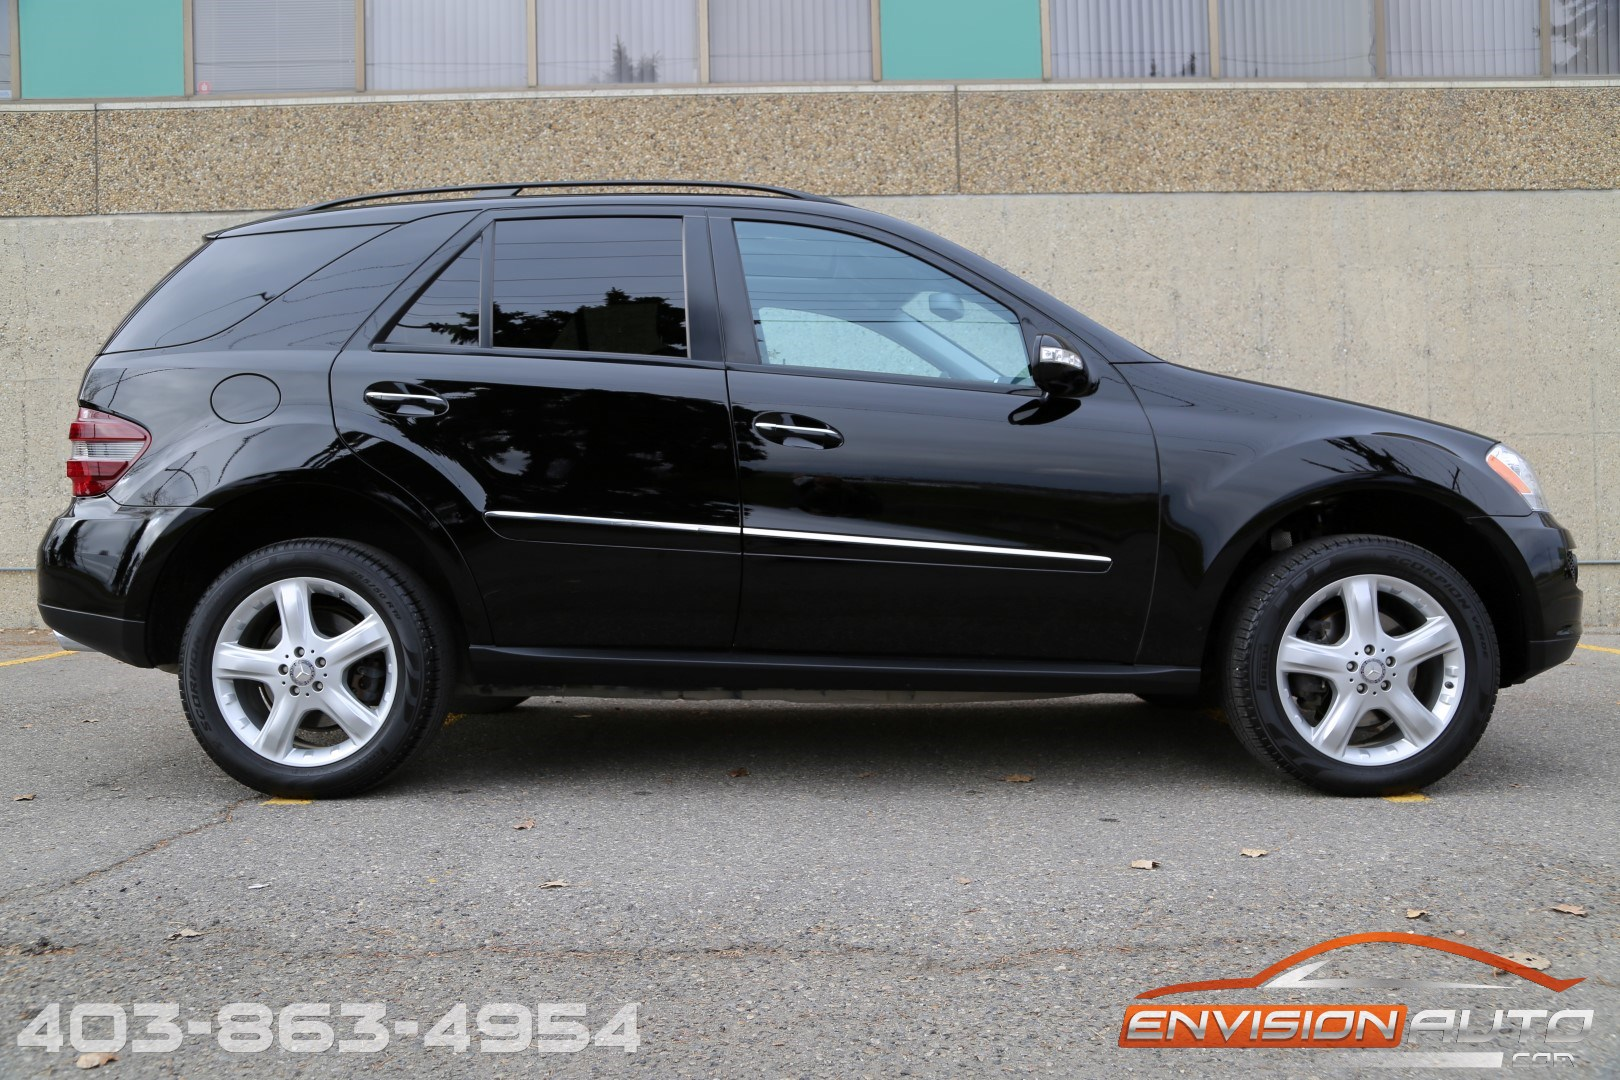 2008 Mercedes-Benz ML350 4Matic | Envision Auto - Calgary Highline Luxury Sports Cars & SUV ...